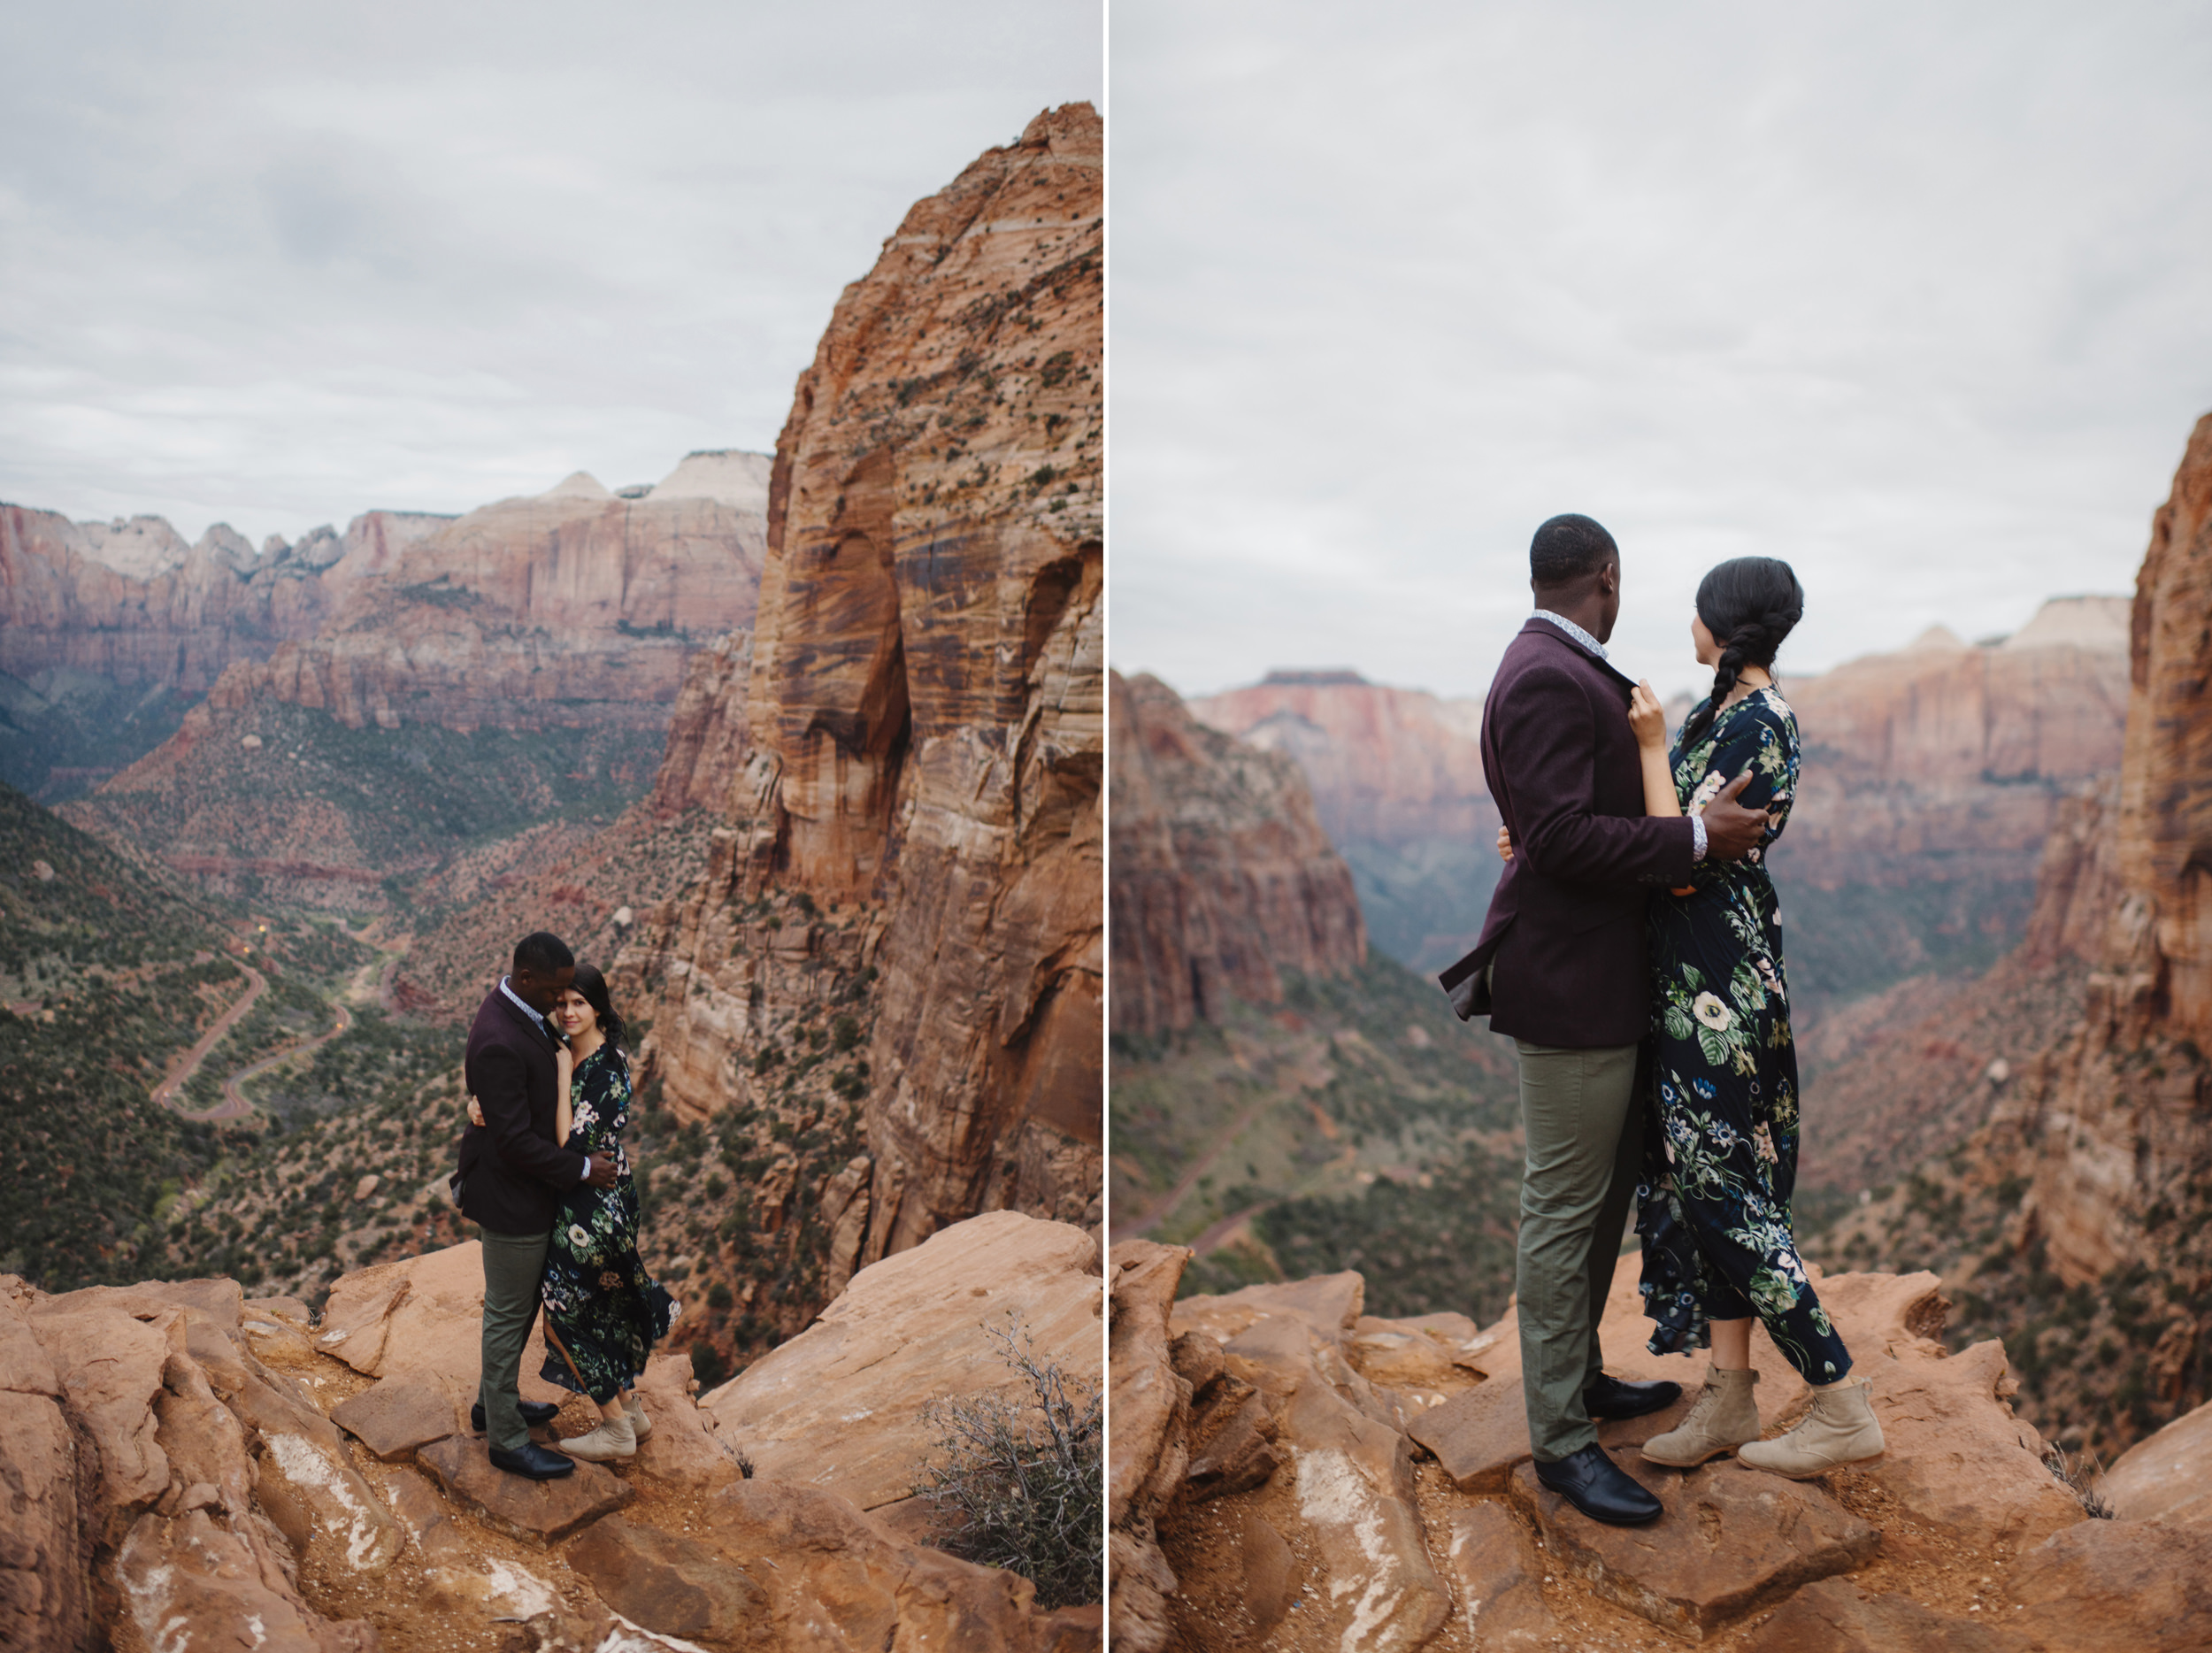 Zion-National-Park-Adventure-Couples-Photography-Destination-Elopement-Photographer15.jpg